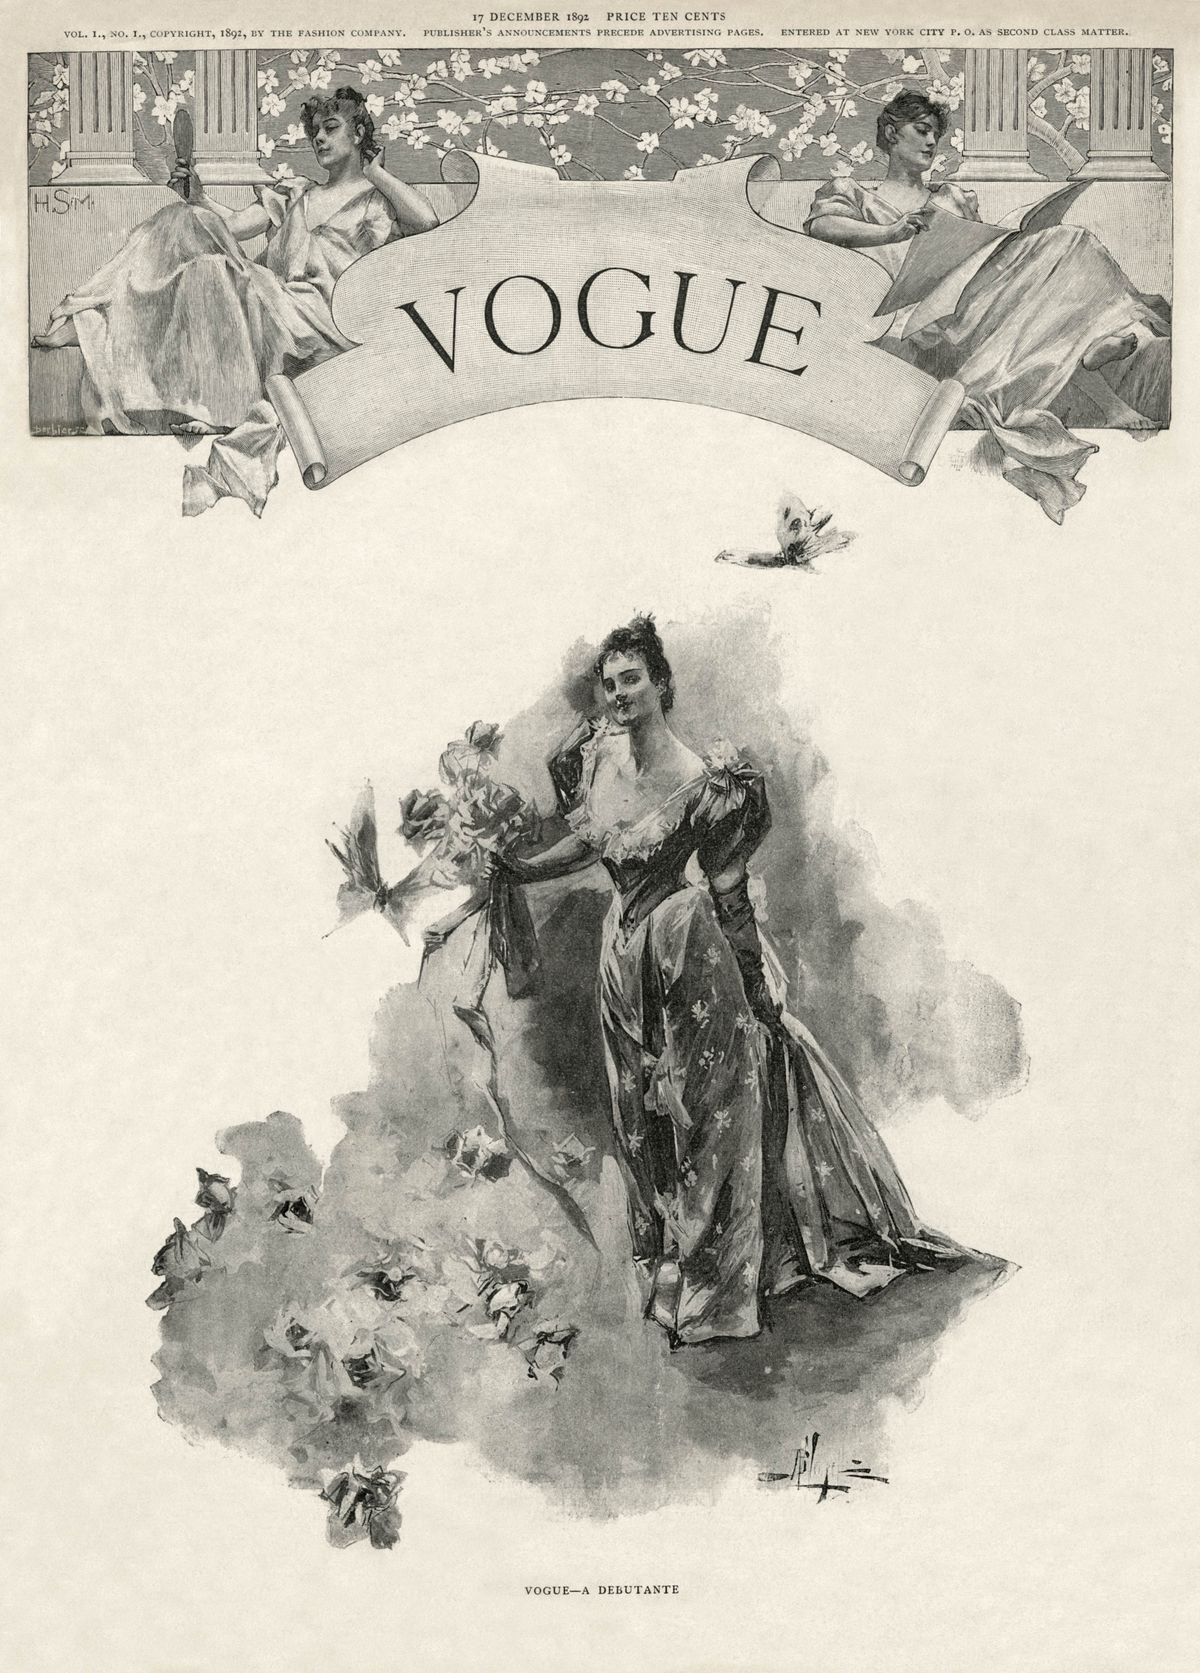 The First Ever Vogue Magazine Cover From December 1892 A Drawing Of